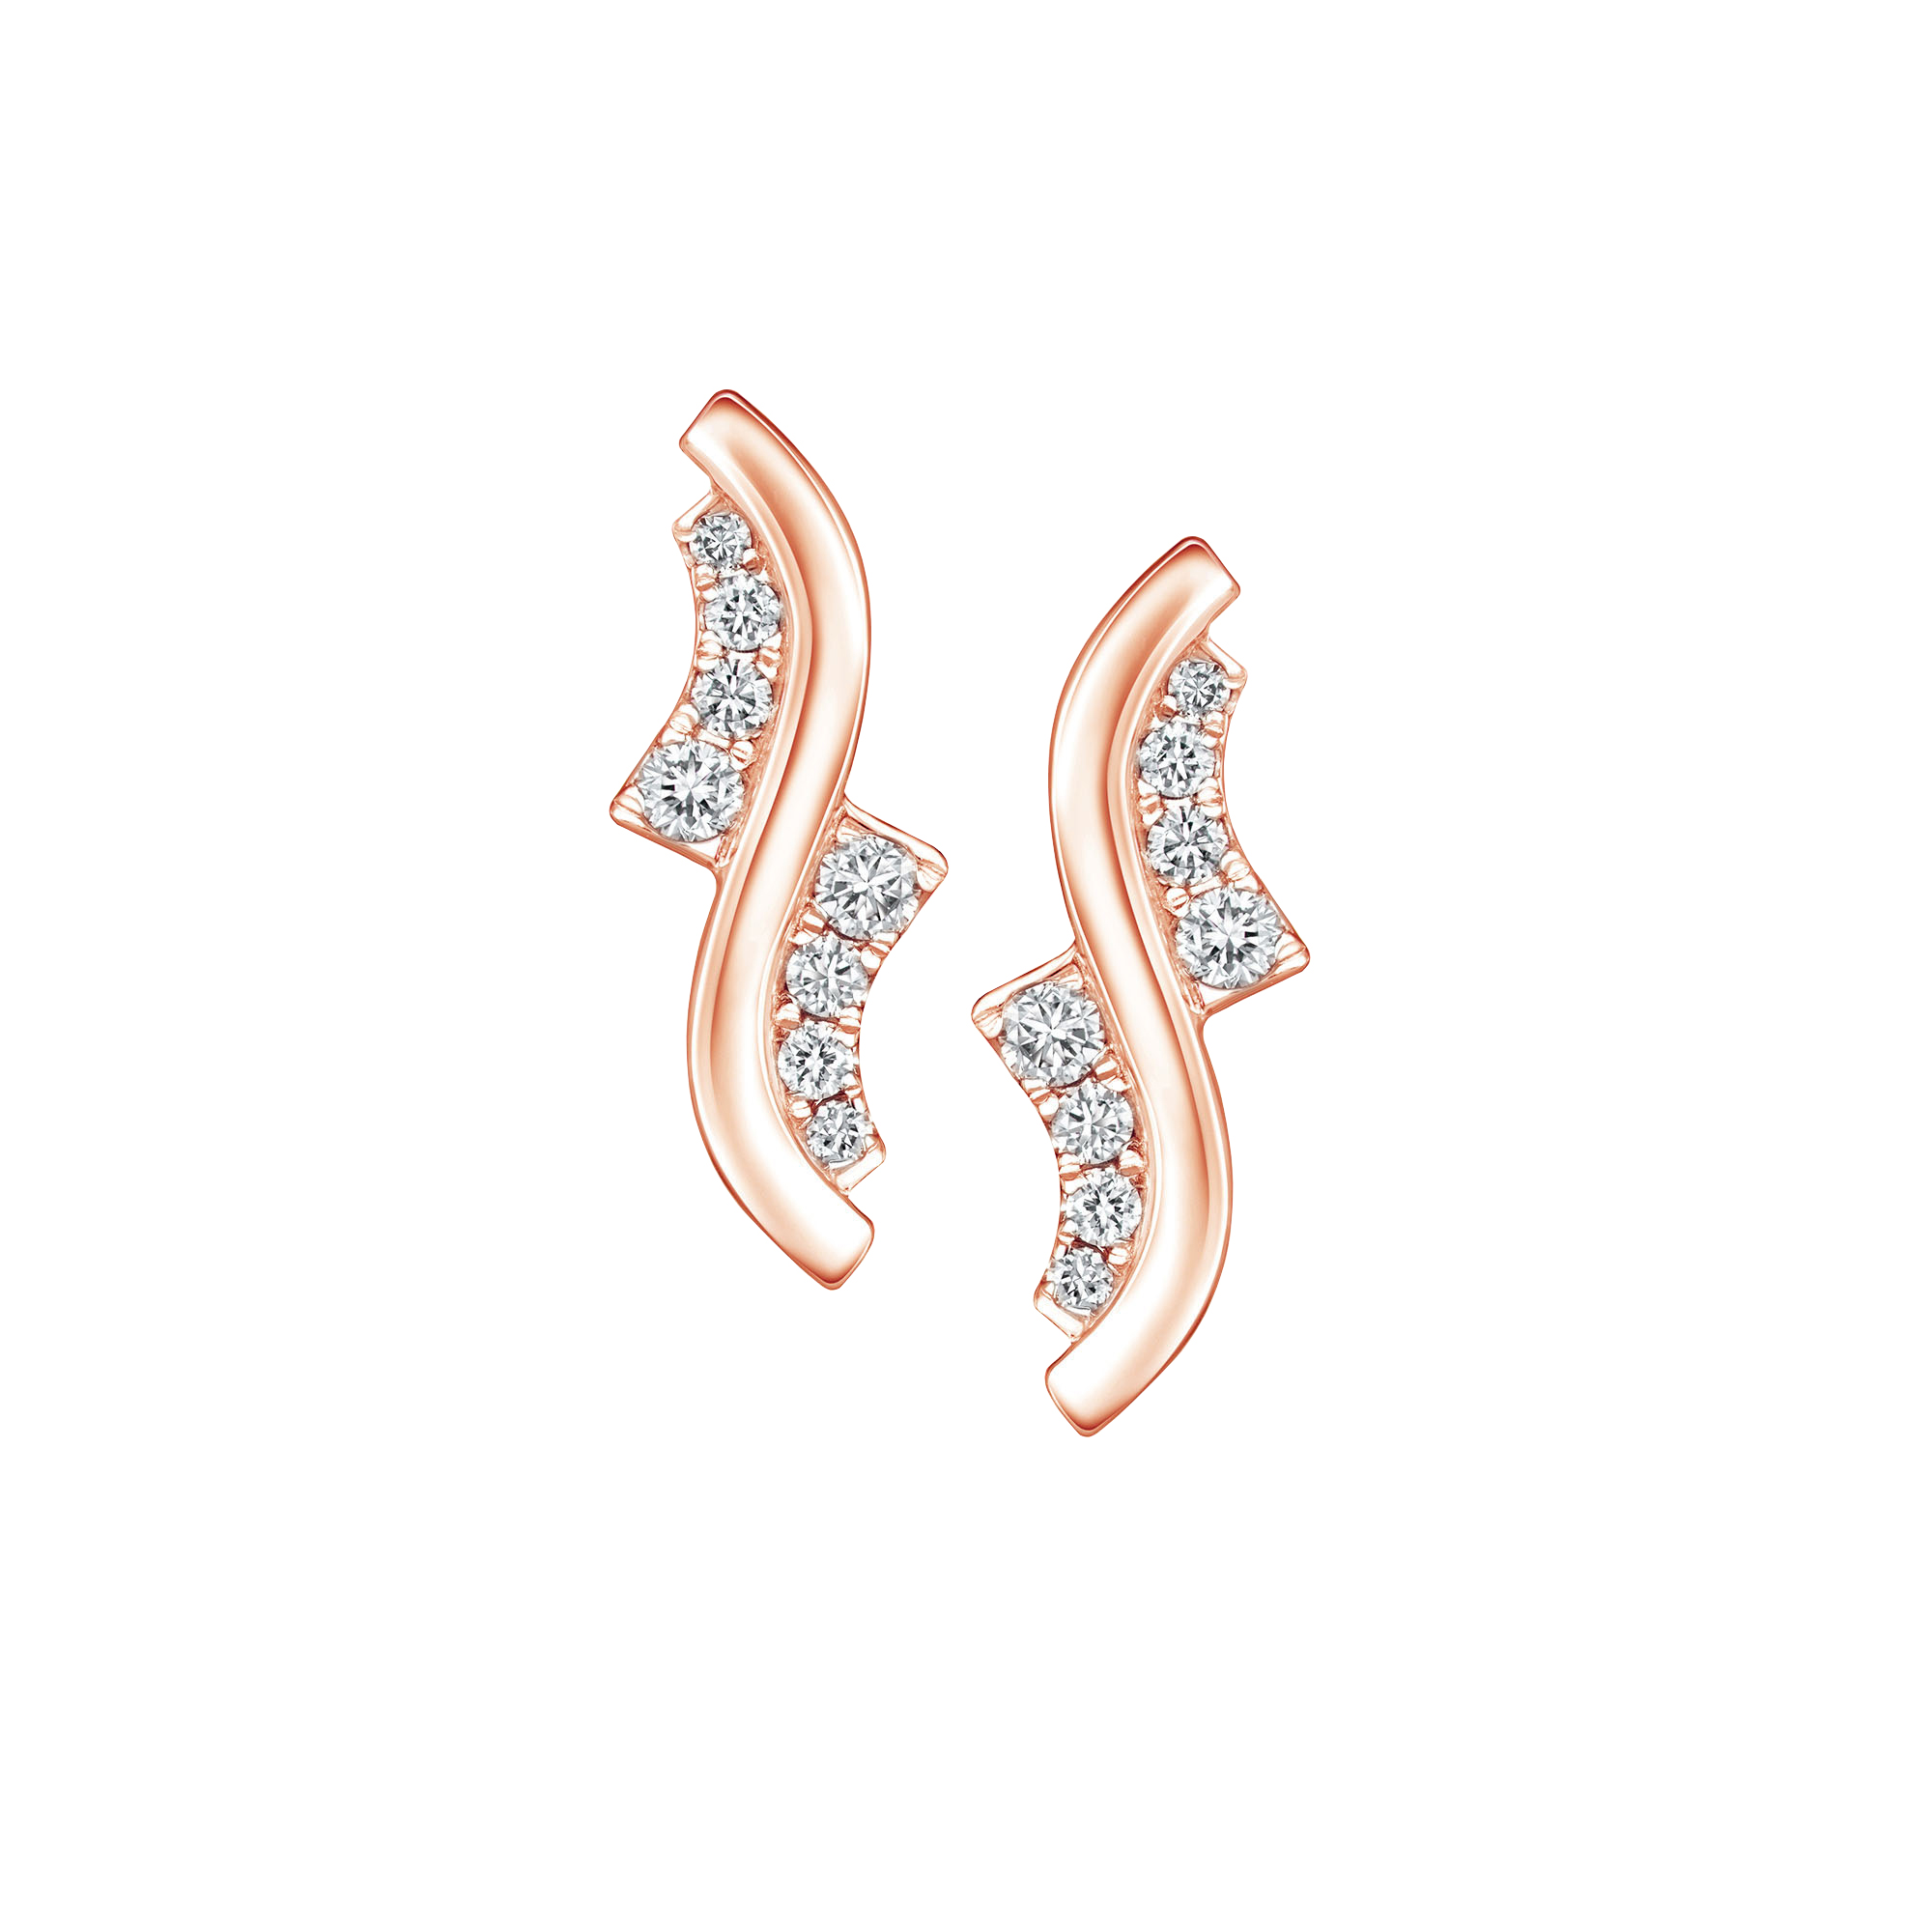 Soleluna AJYLE Dancing Wave Diamond Earrings